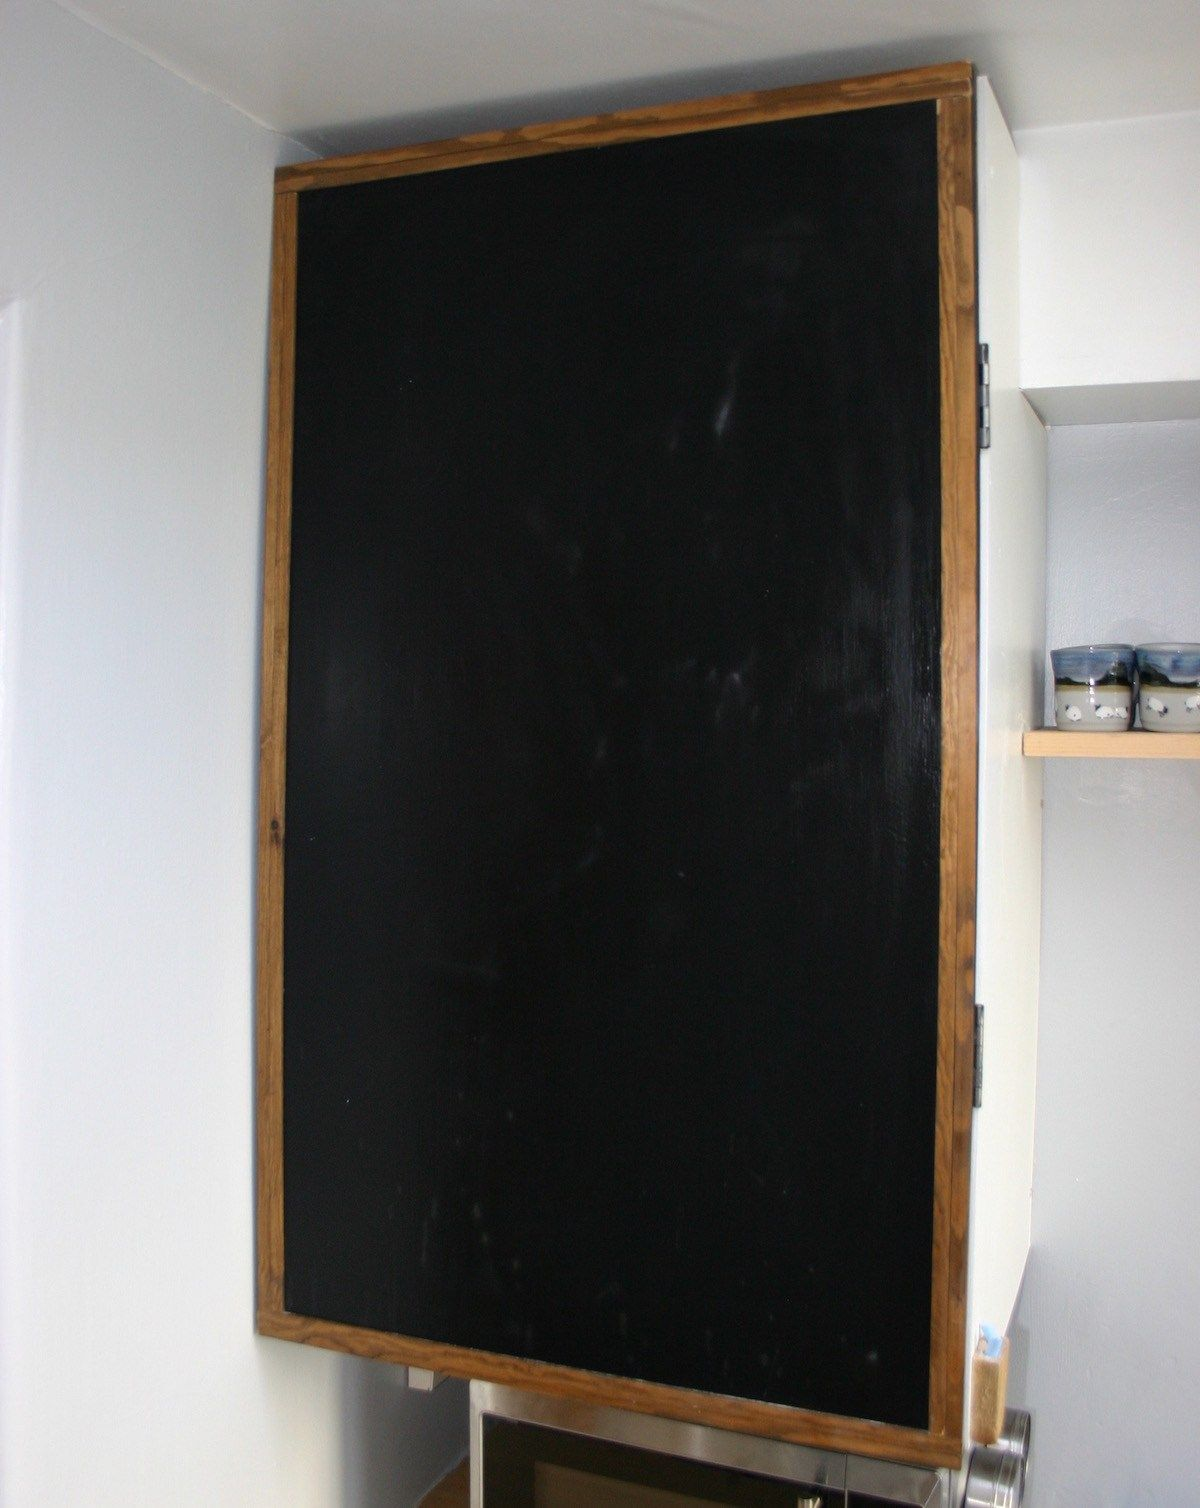 Boiler cupboard finished boiler cover ideas clean